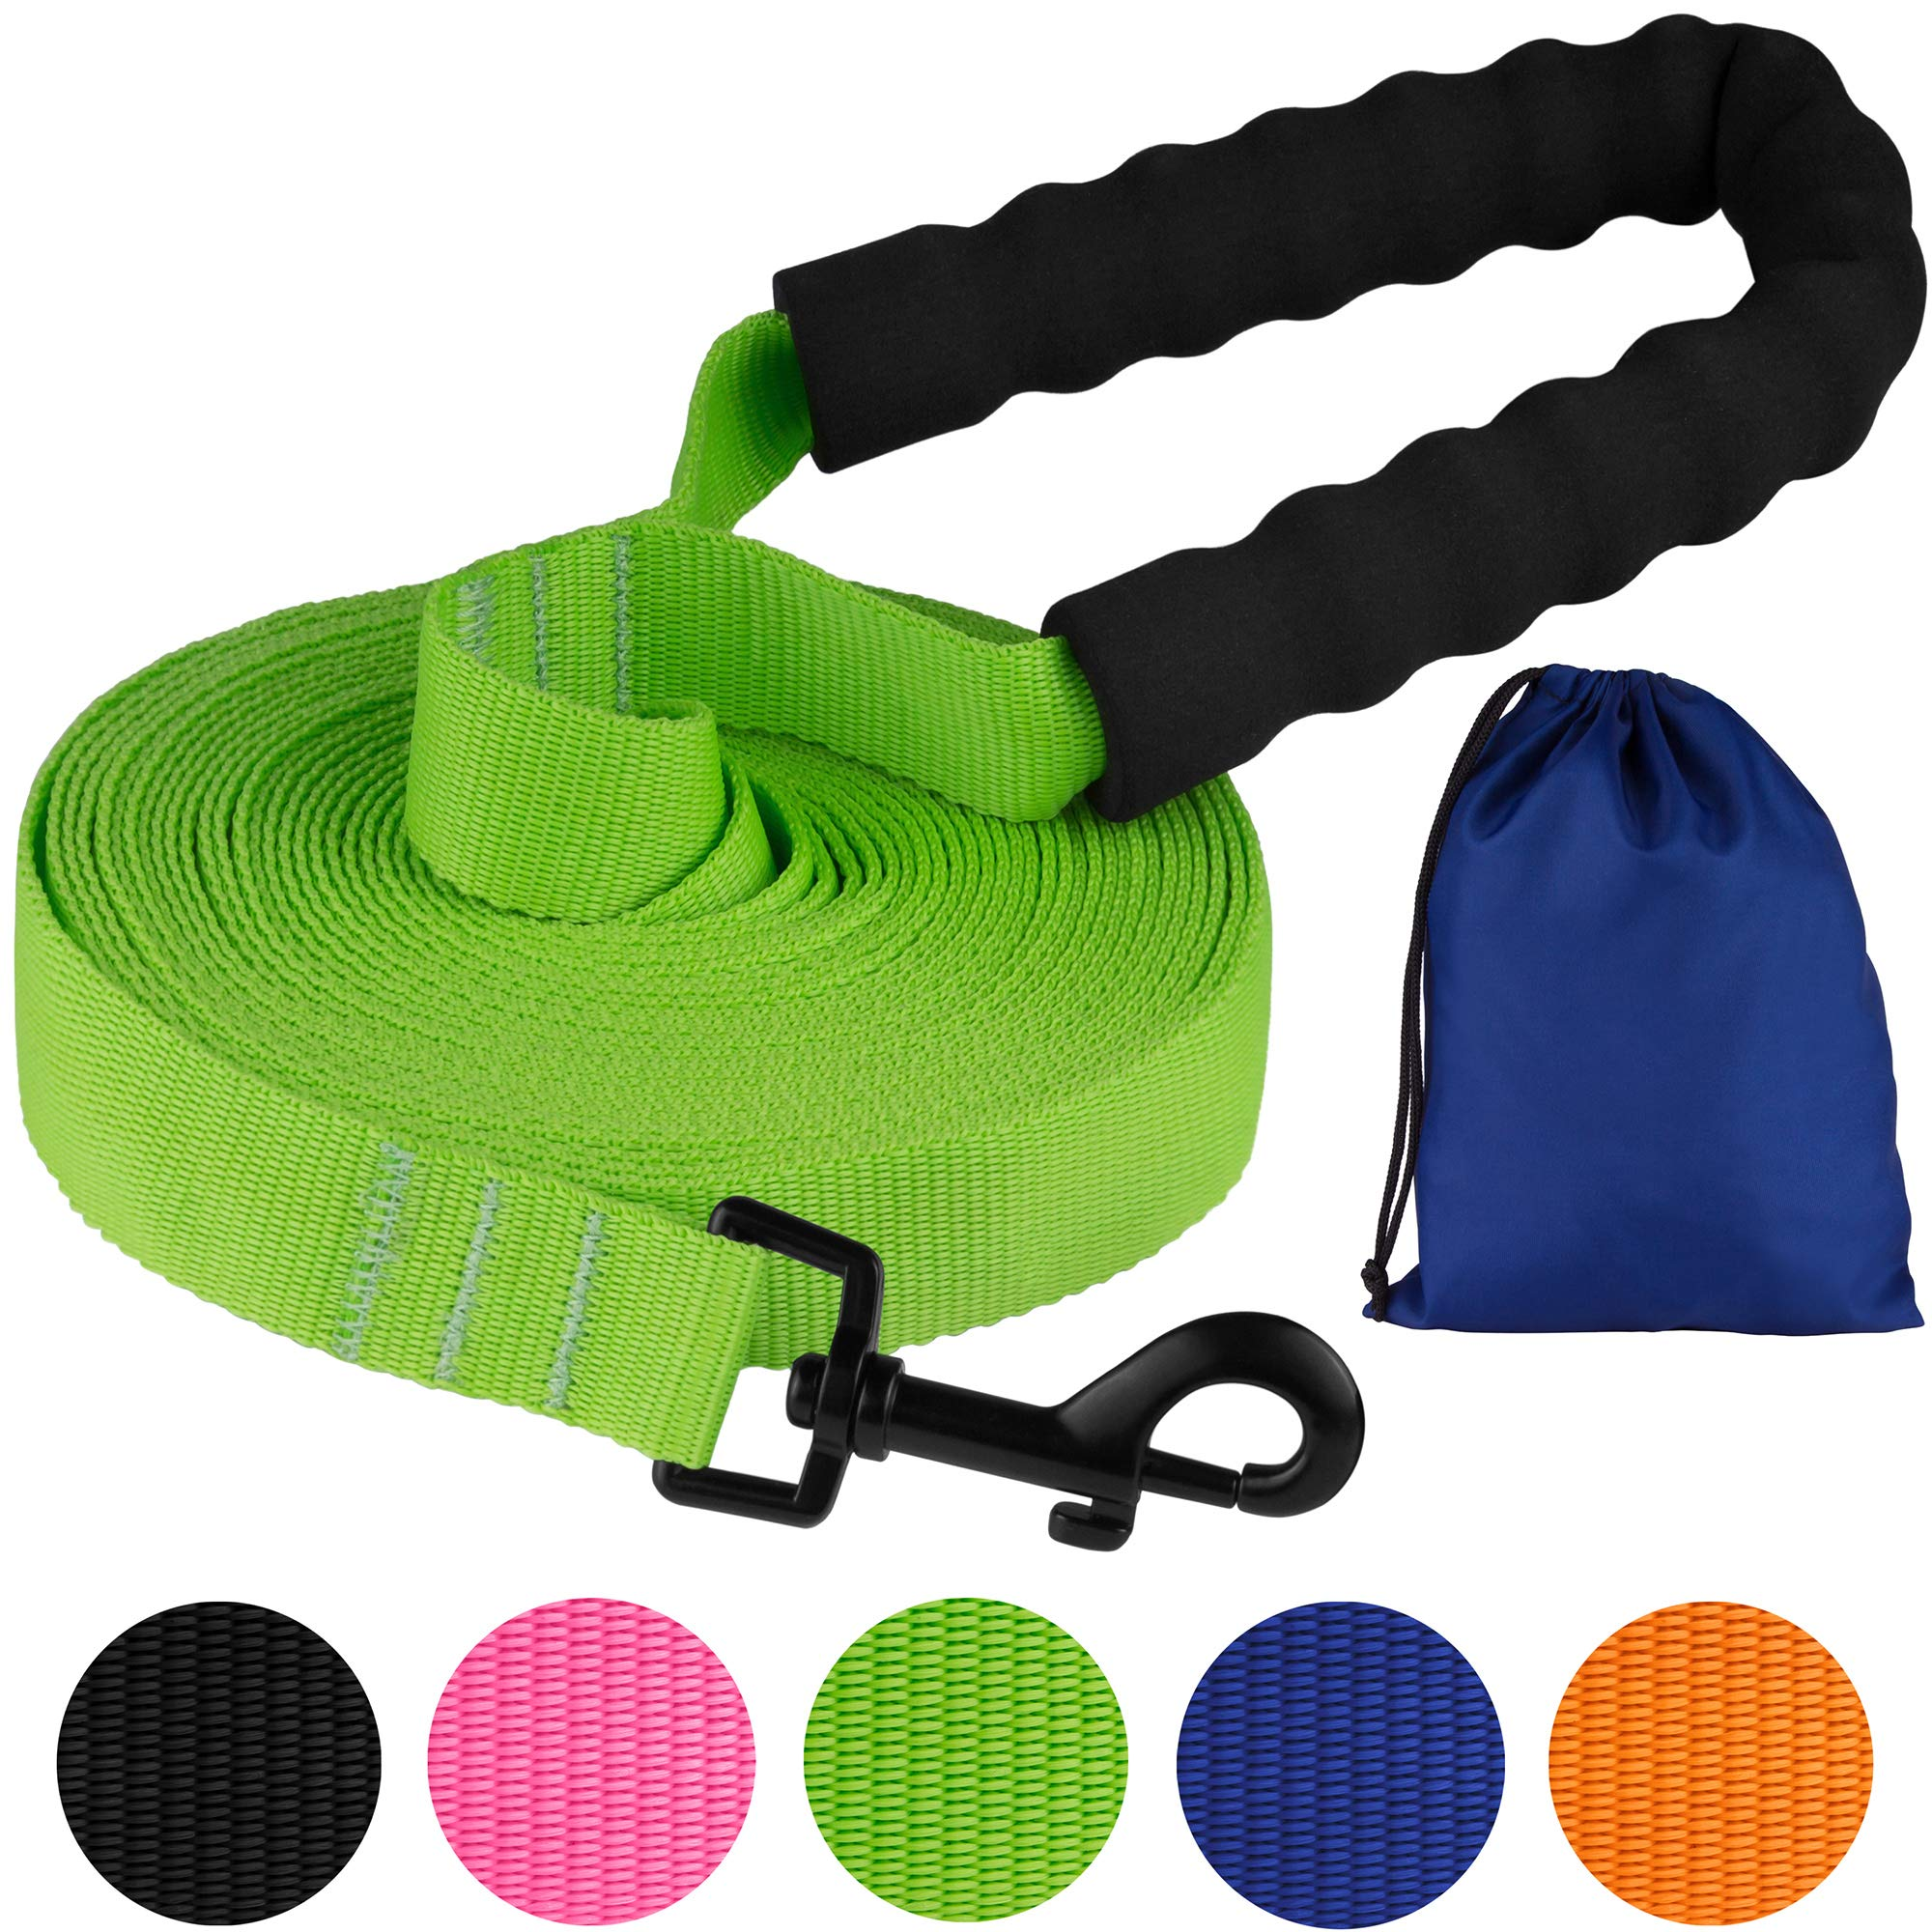 Pawia Long Dog Leash with Padded Handle Check Cord 1 Inch Nylon Training Lead Heavy Duty Leashes for Medium Large Dogs Black Orange Pink Blue Lime Green (30FT, Lime Green)